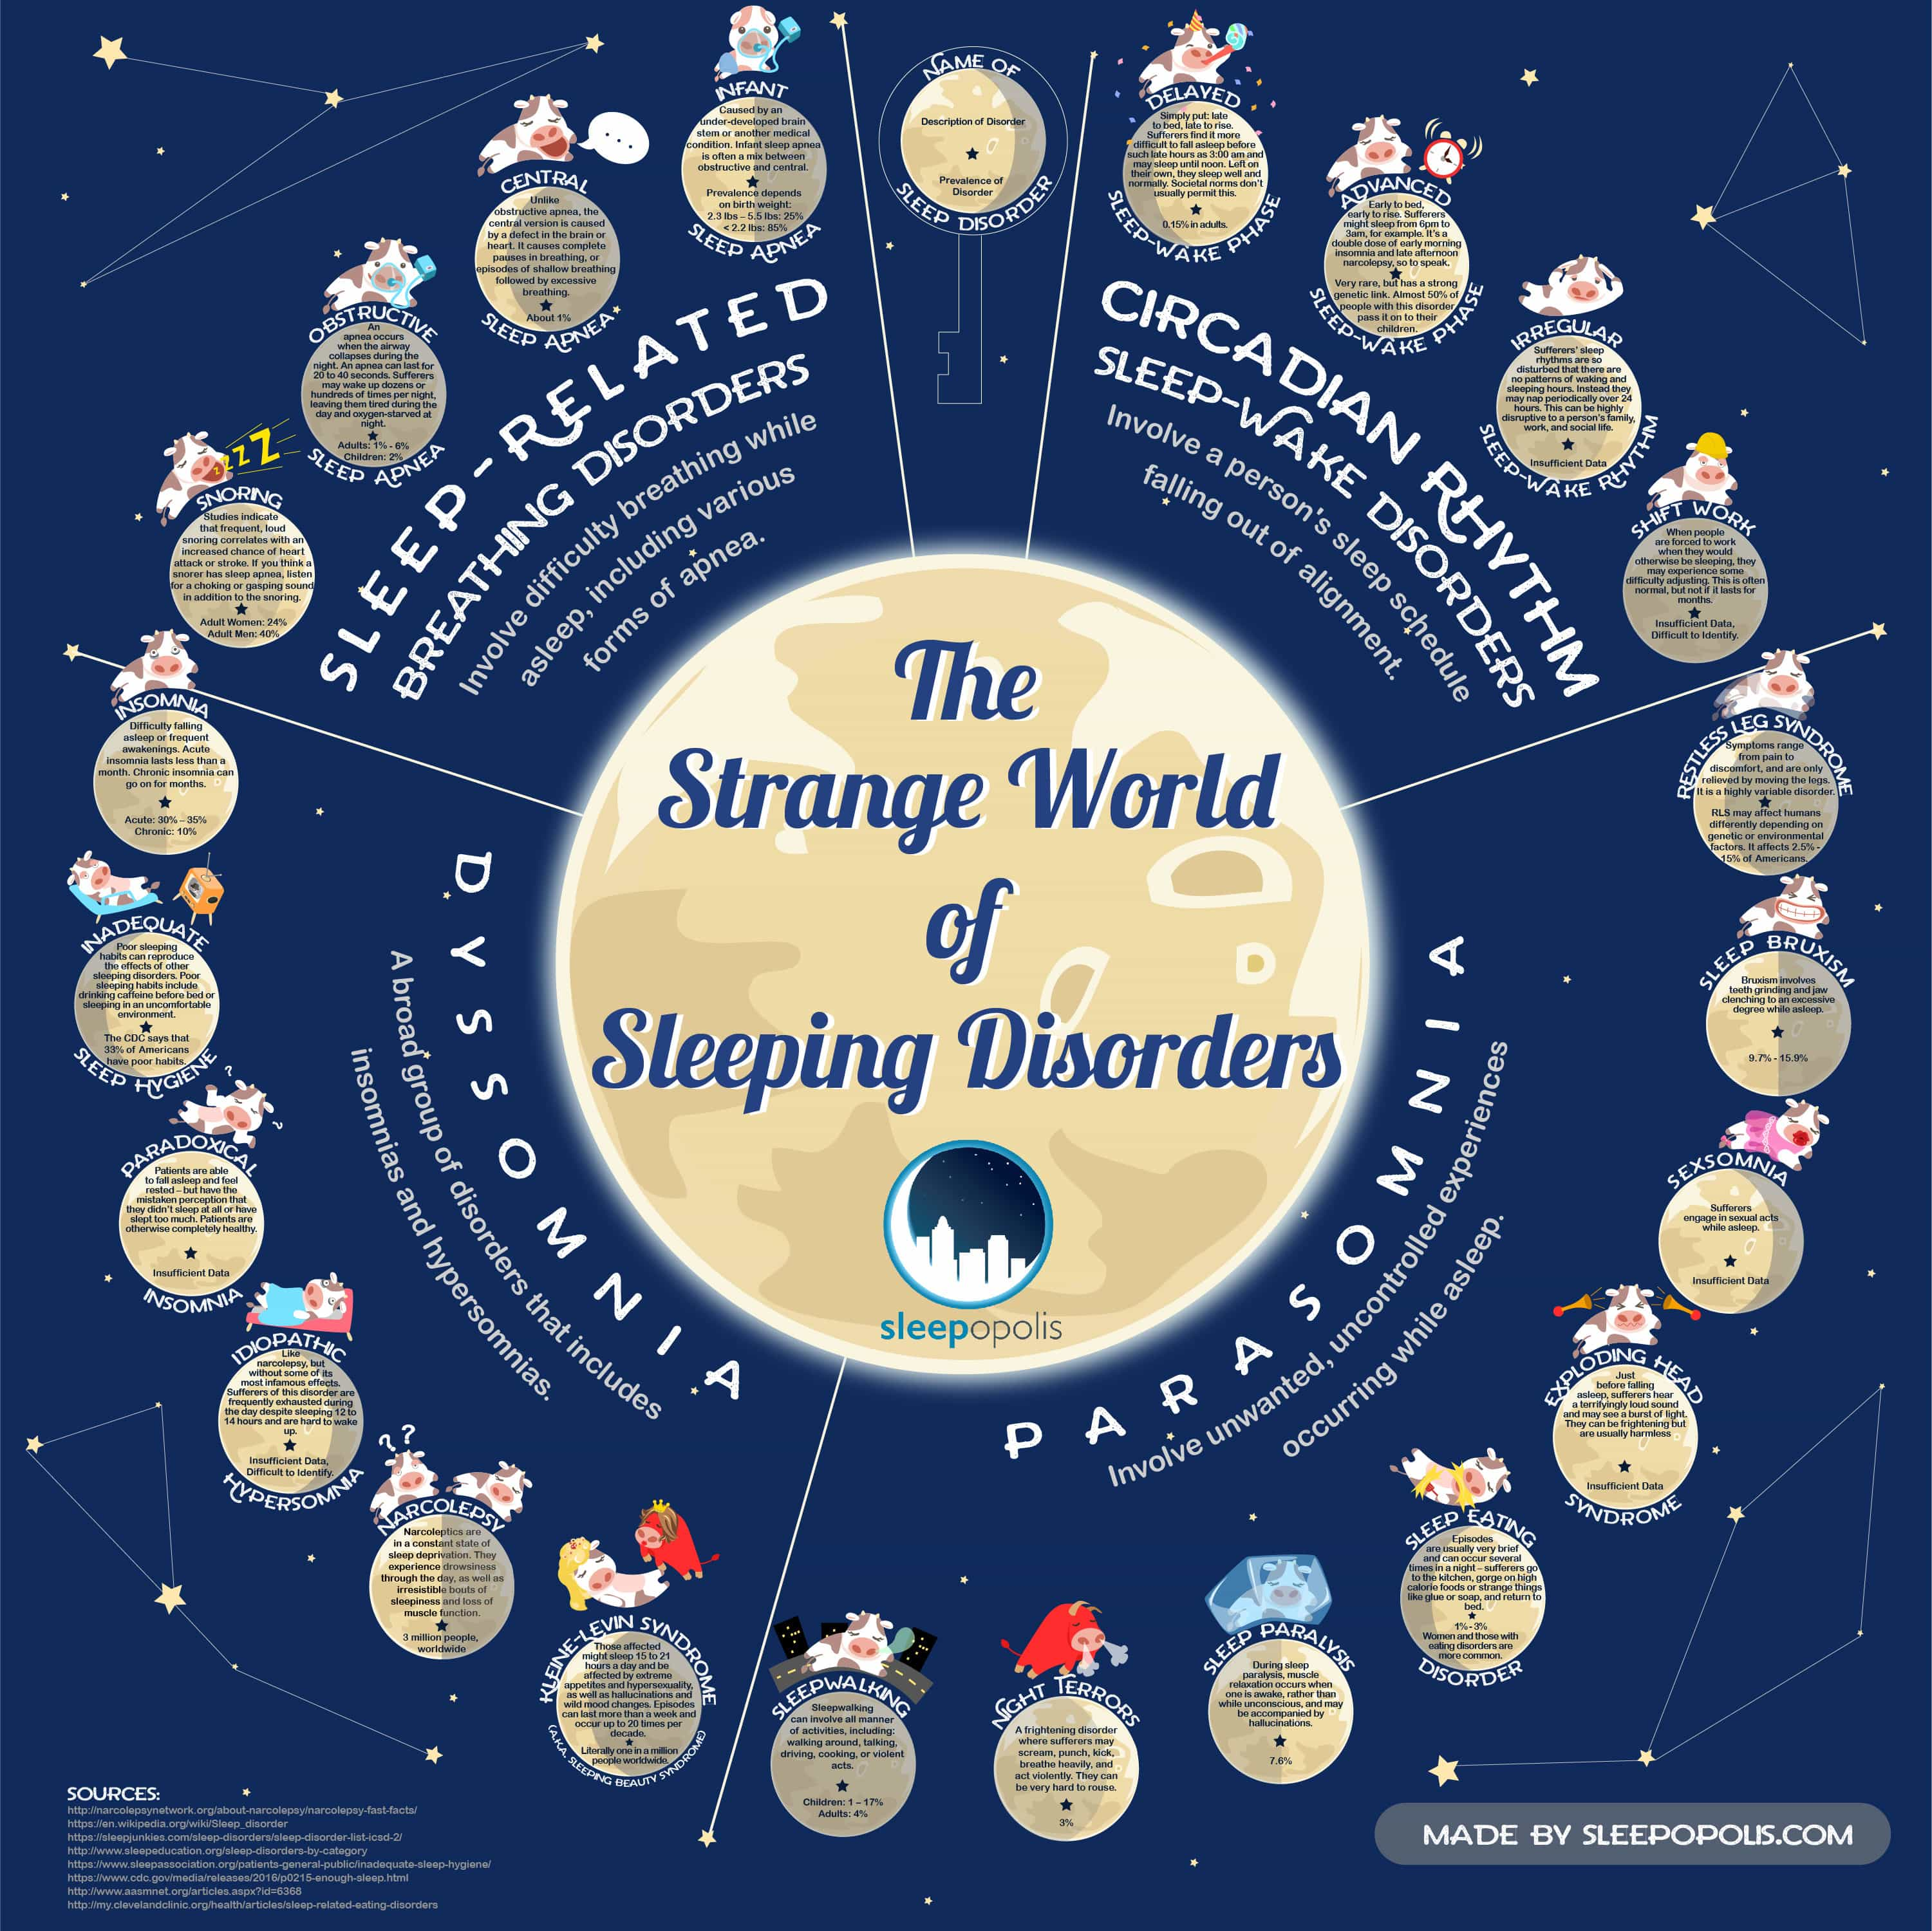 The Strange World of Sleeping Disorders - Sleepopolis.com - Infographic